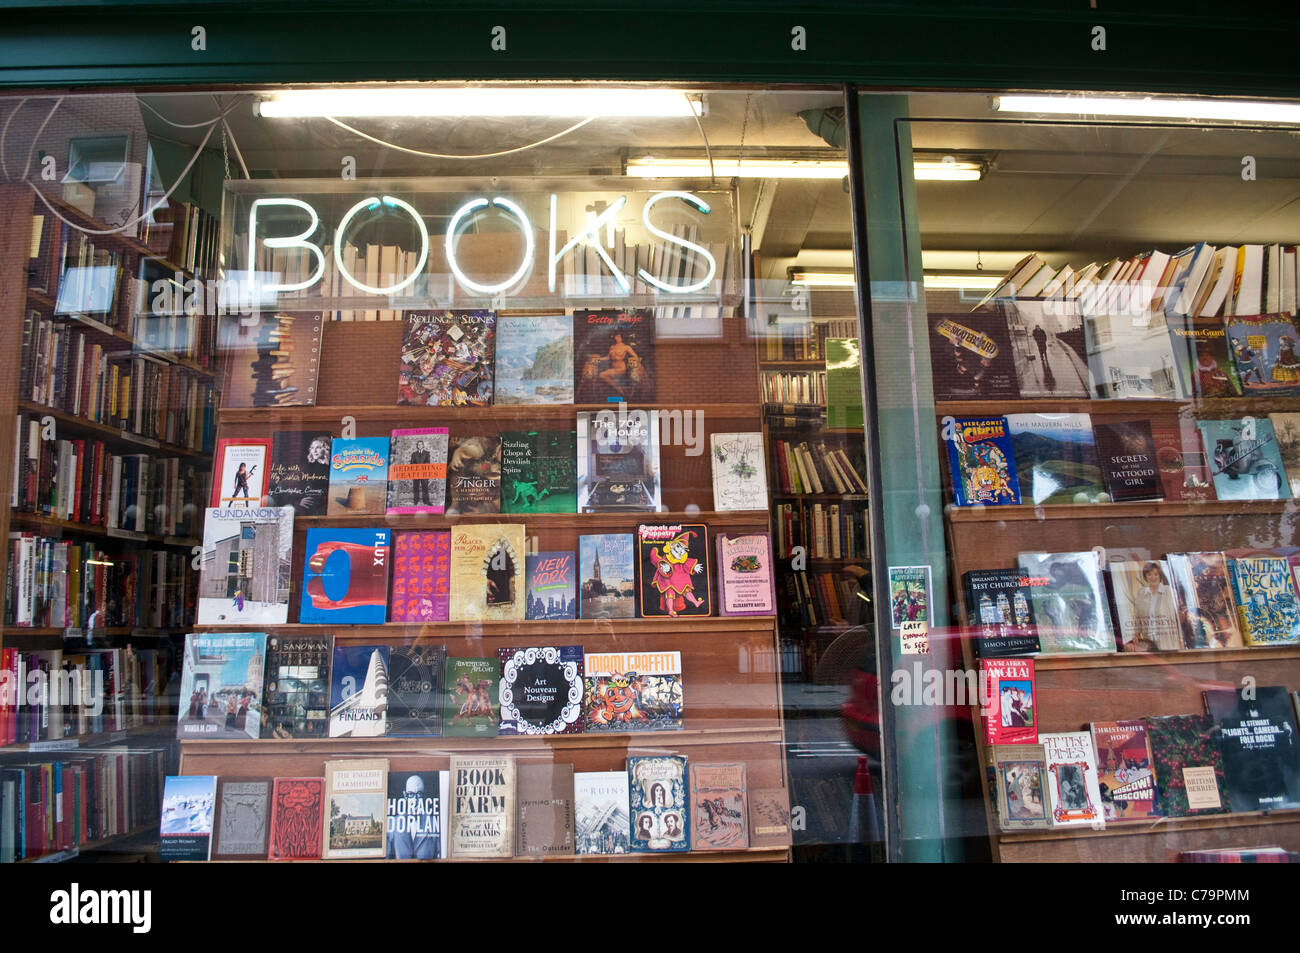 Secondhand bookshop window on Charing Cross Road, London, UK - Stock Image